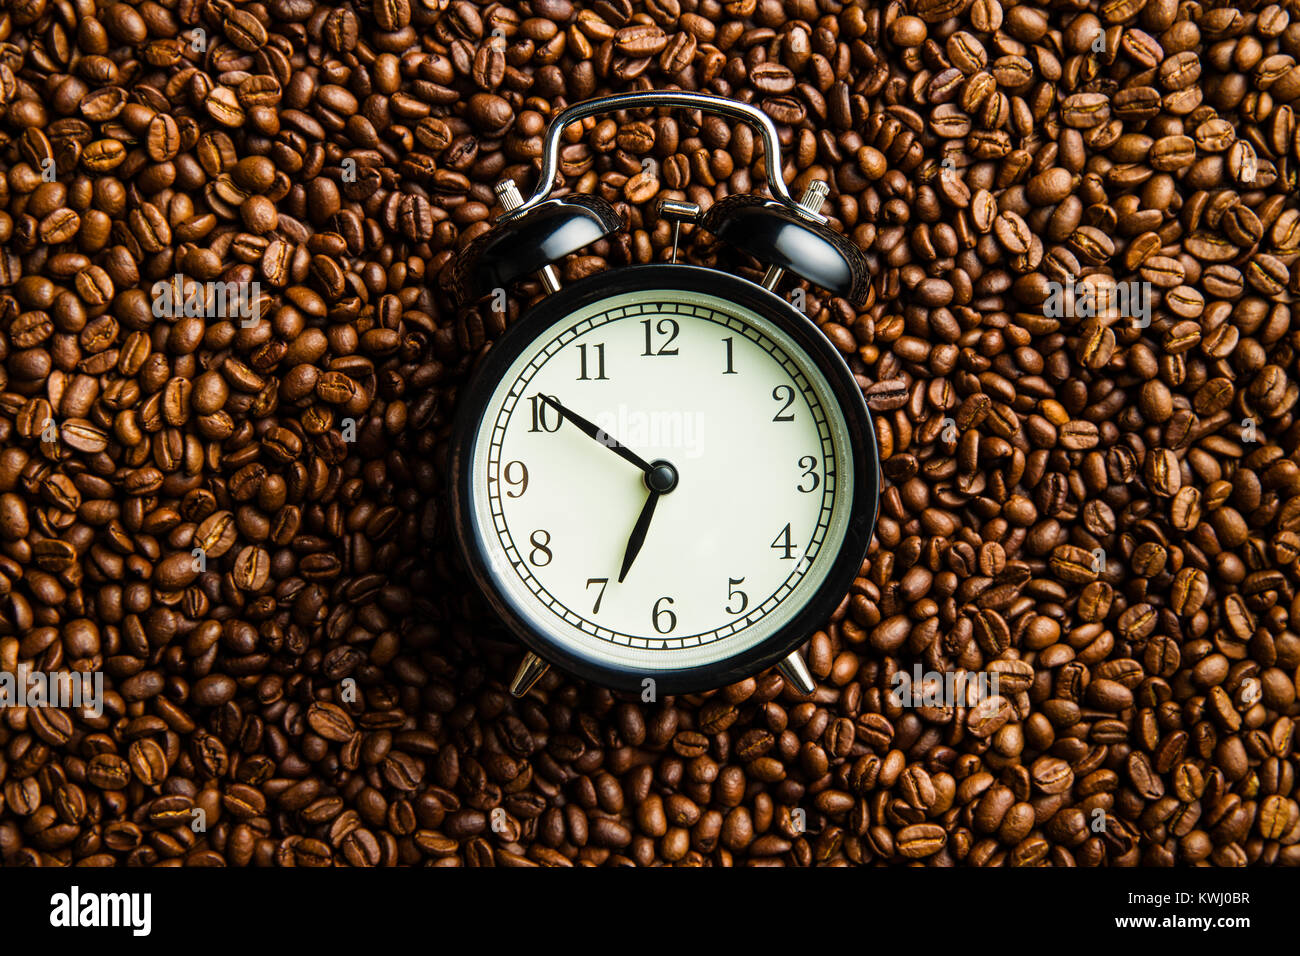 Vintage alarm clock and coffee beans. Top view. - Stock Image